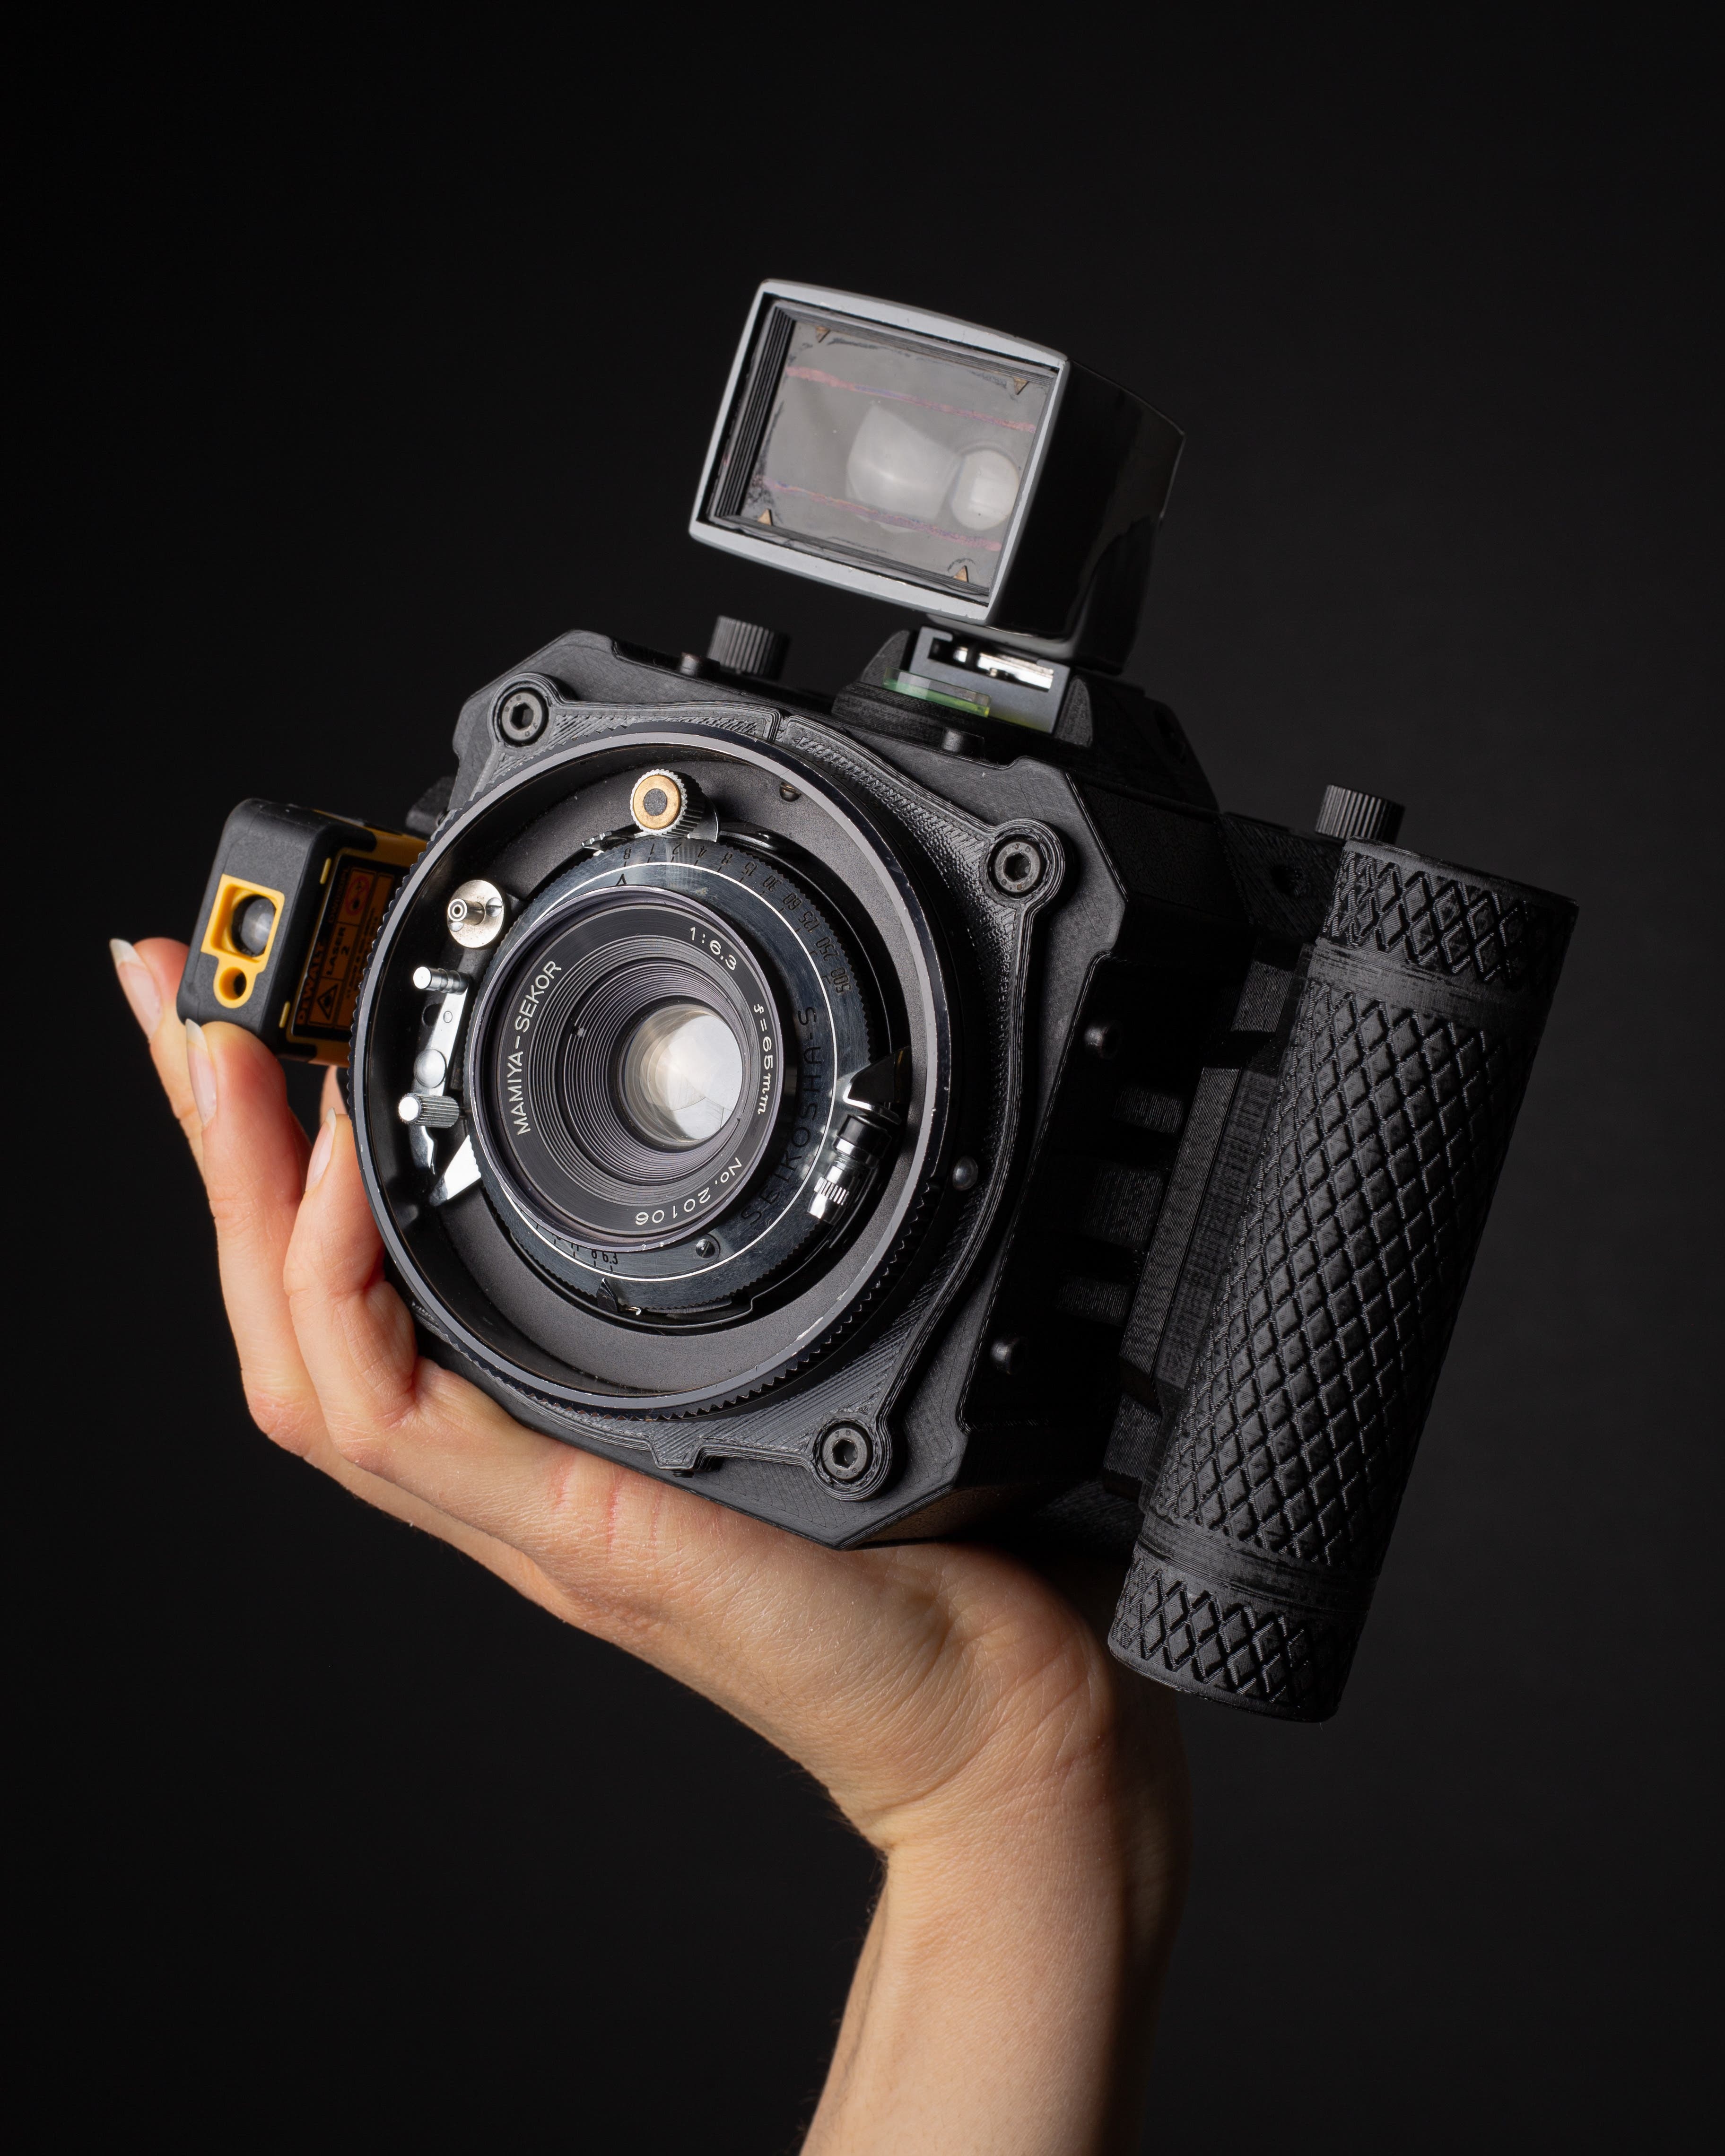 Dora Goodman Marries new Technology to old School Camera Tradition